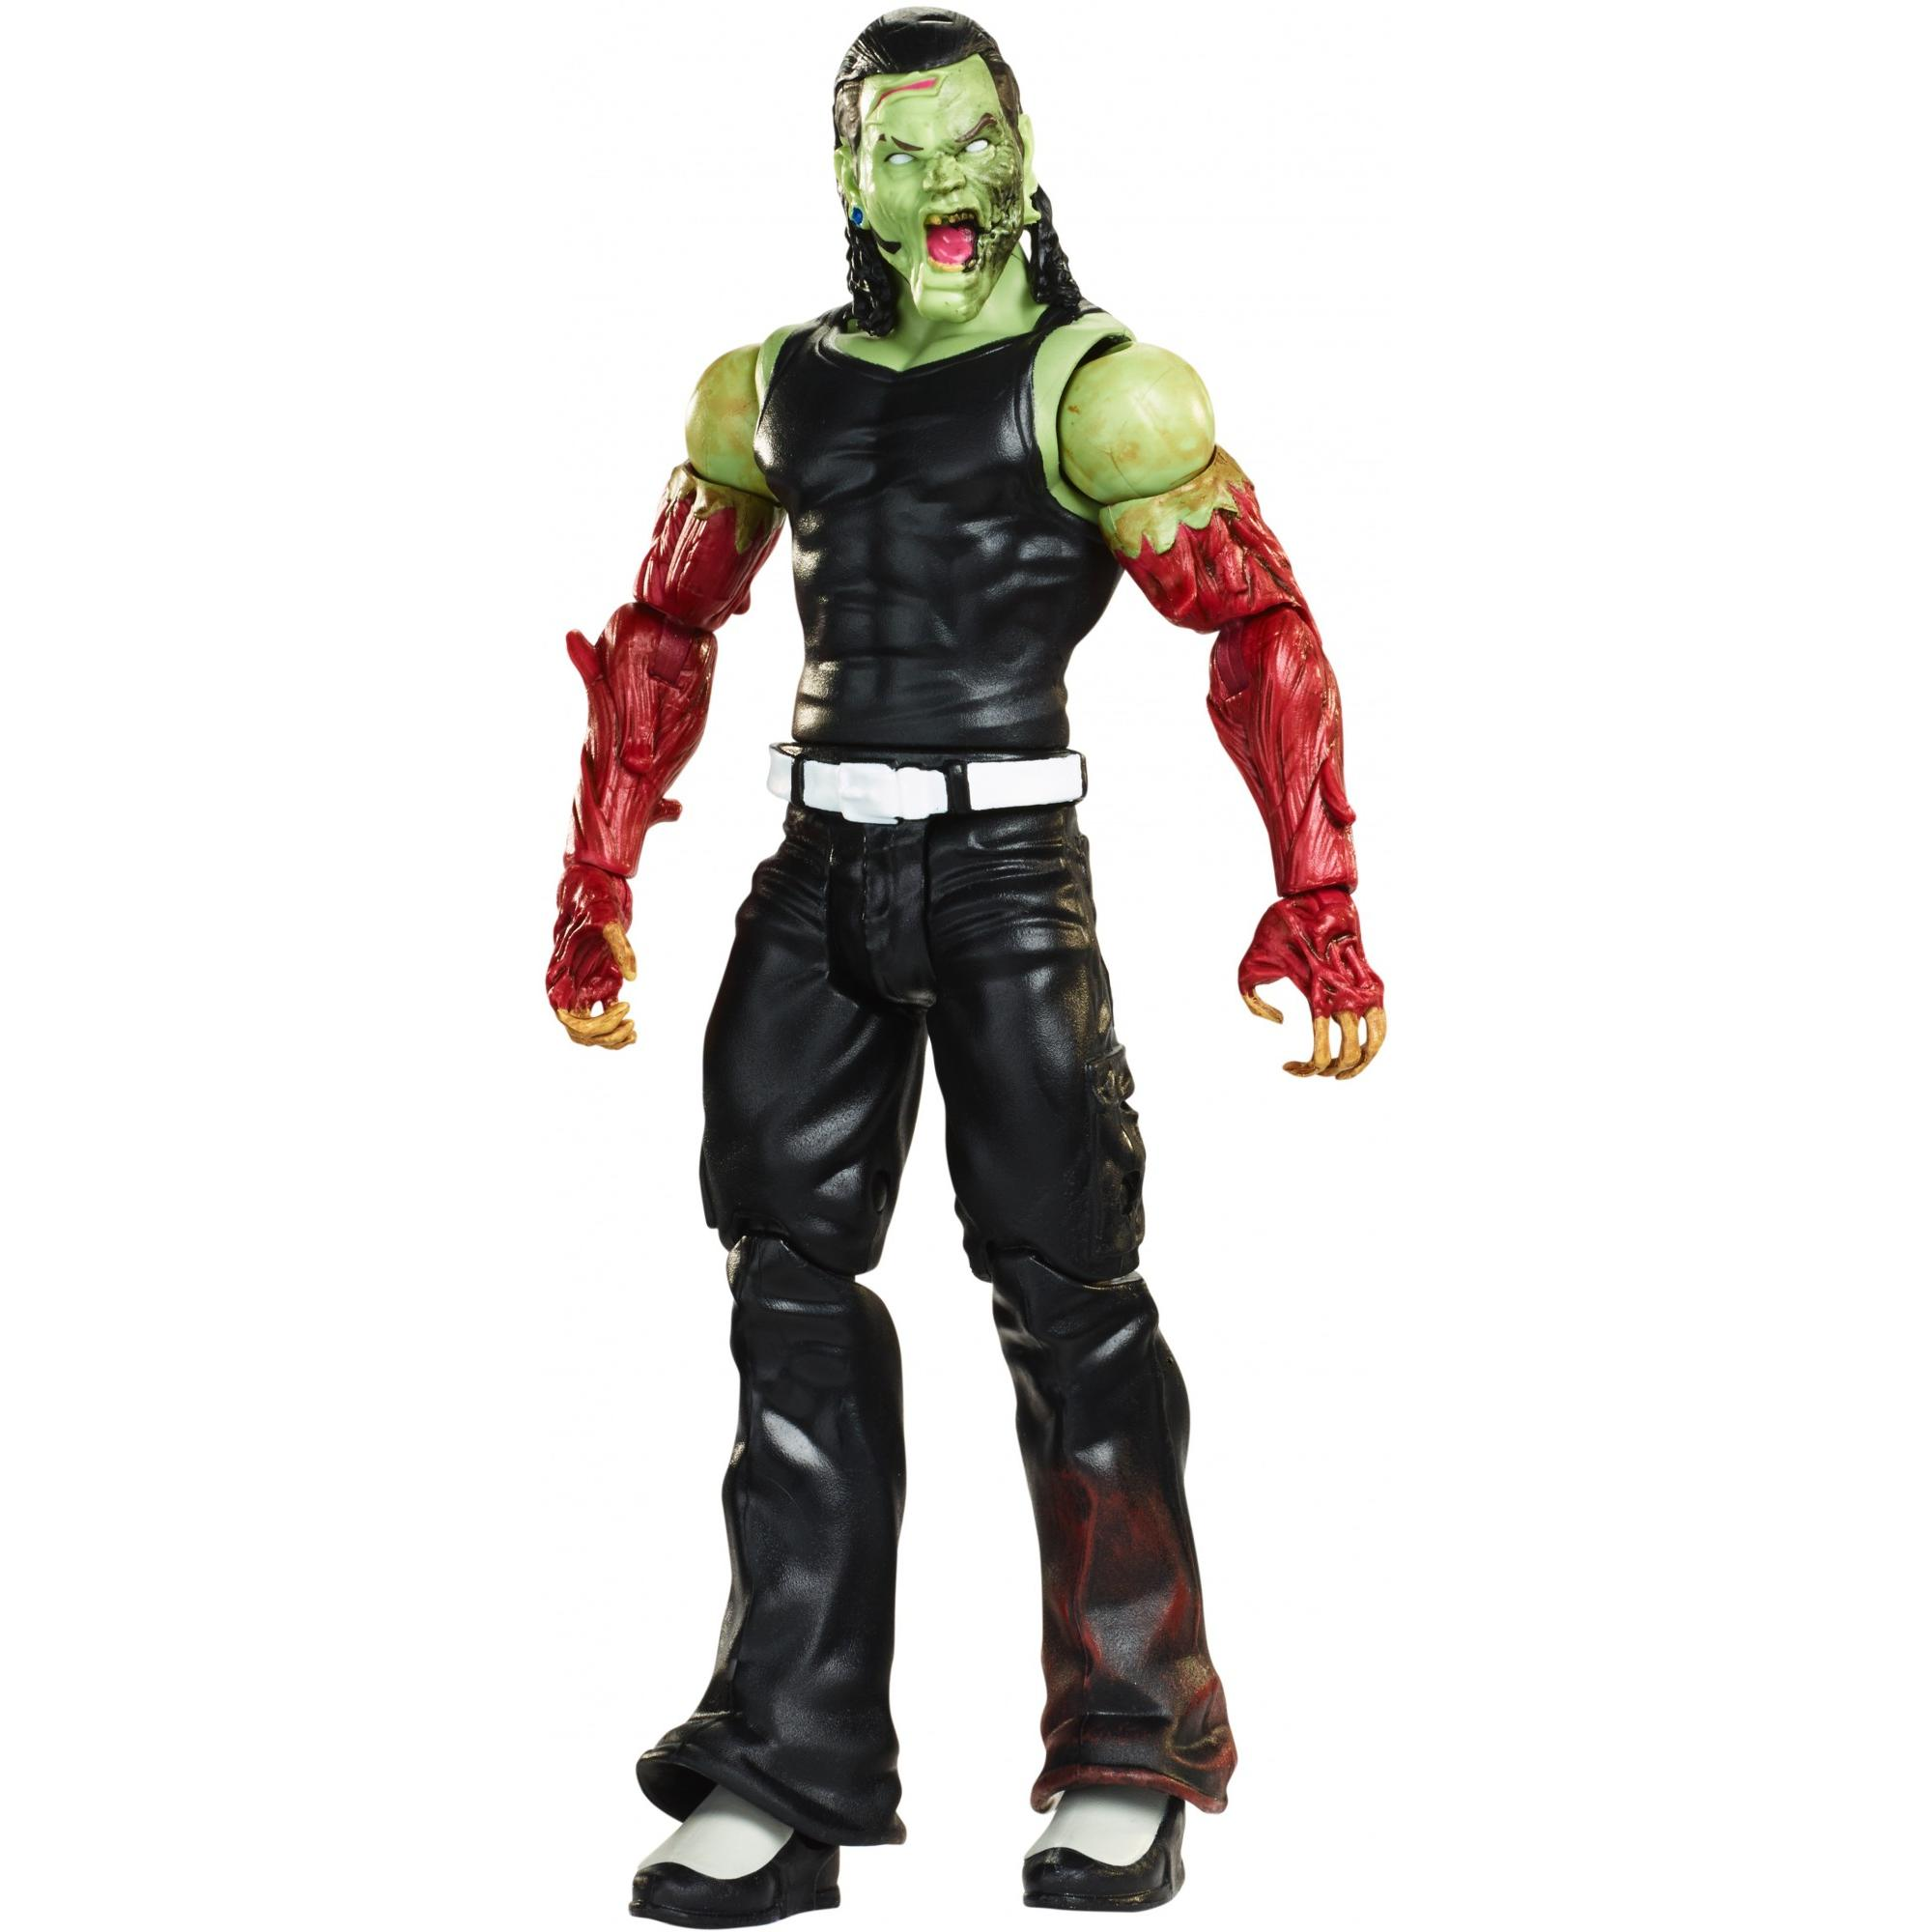 WWE Zombie Superstars Jeff Hardy Action Figure with Unique Detailing